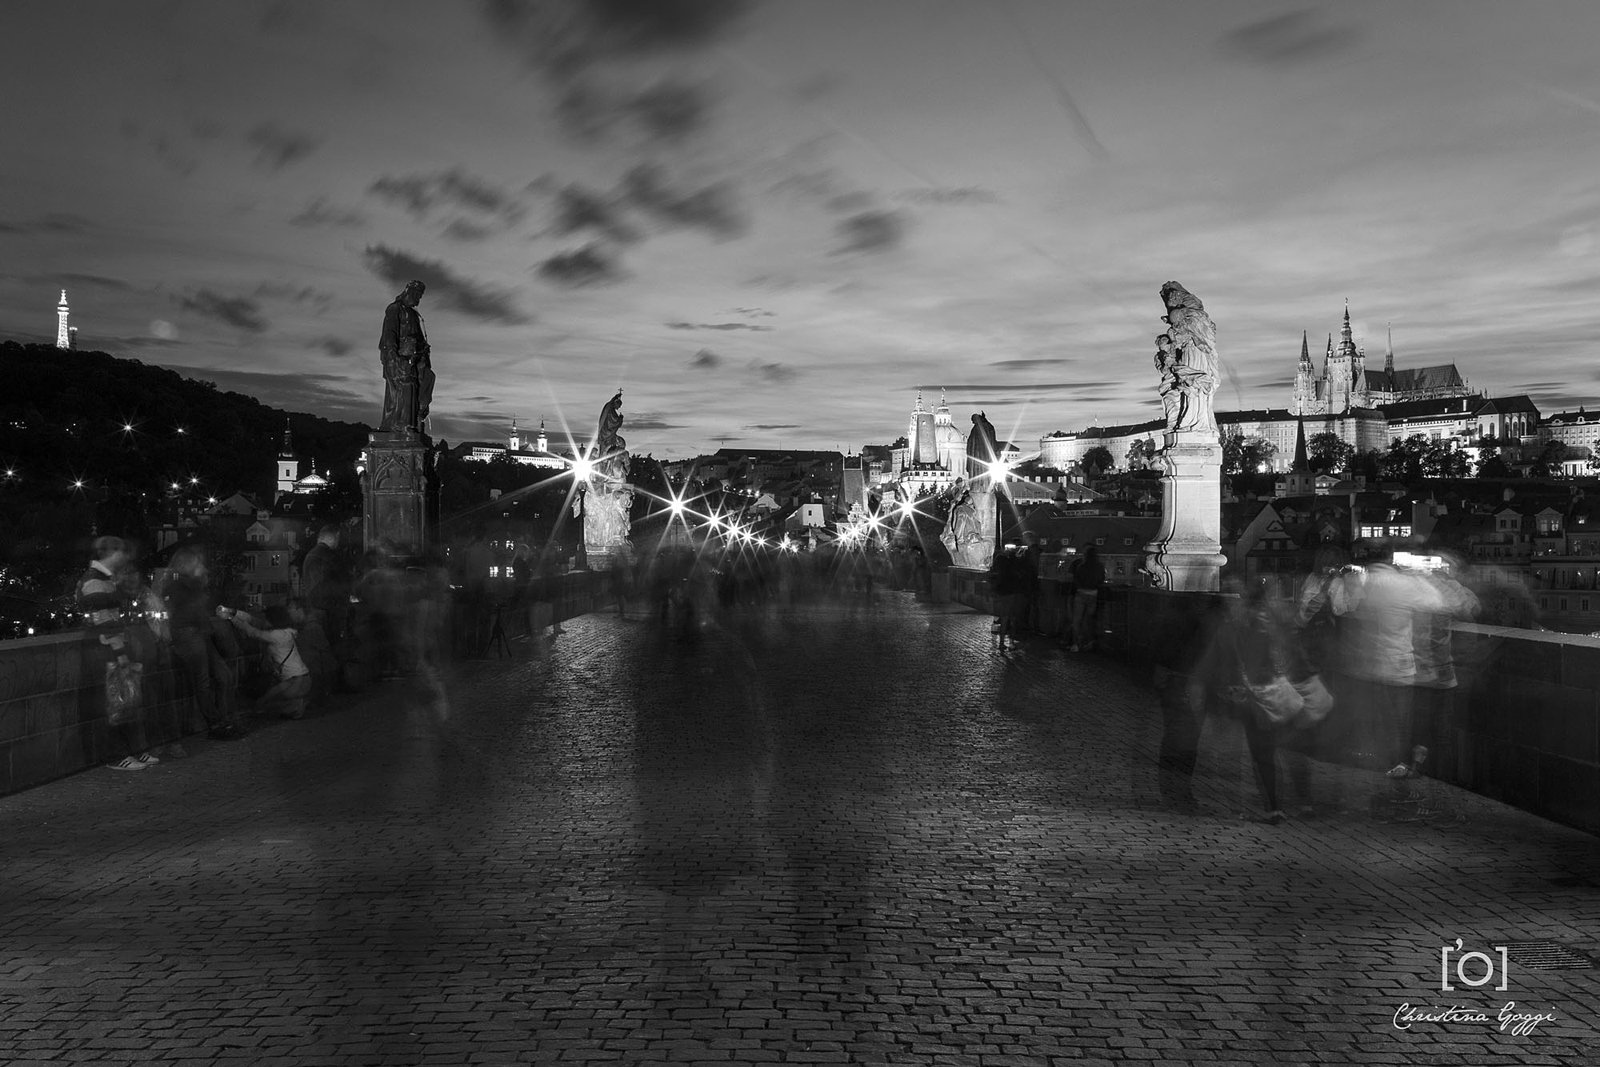 Tutorial: Capturing the Spectral Effect on Prague's Iconic Bridge